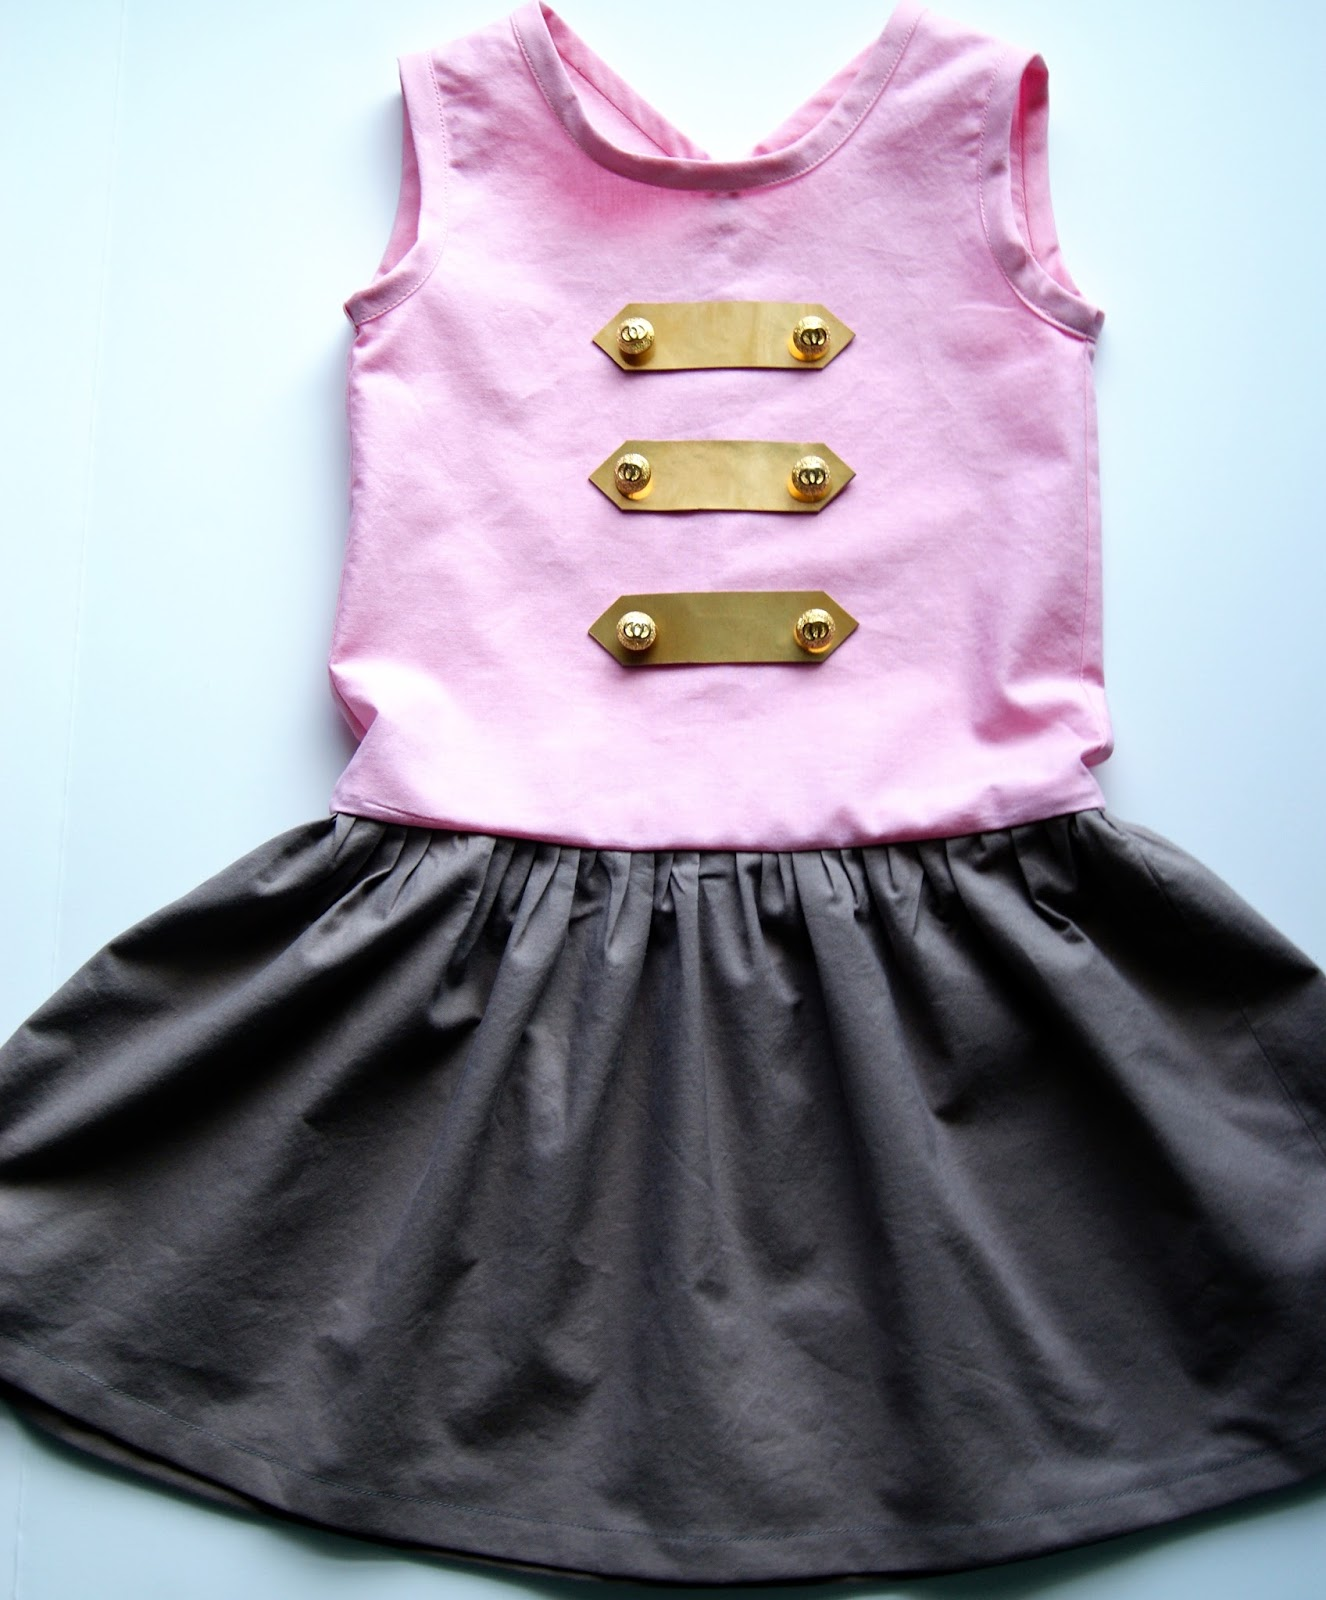 Sailor Button Dress by nestfullofeggs